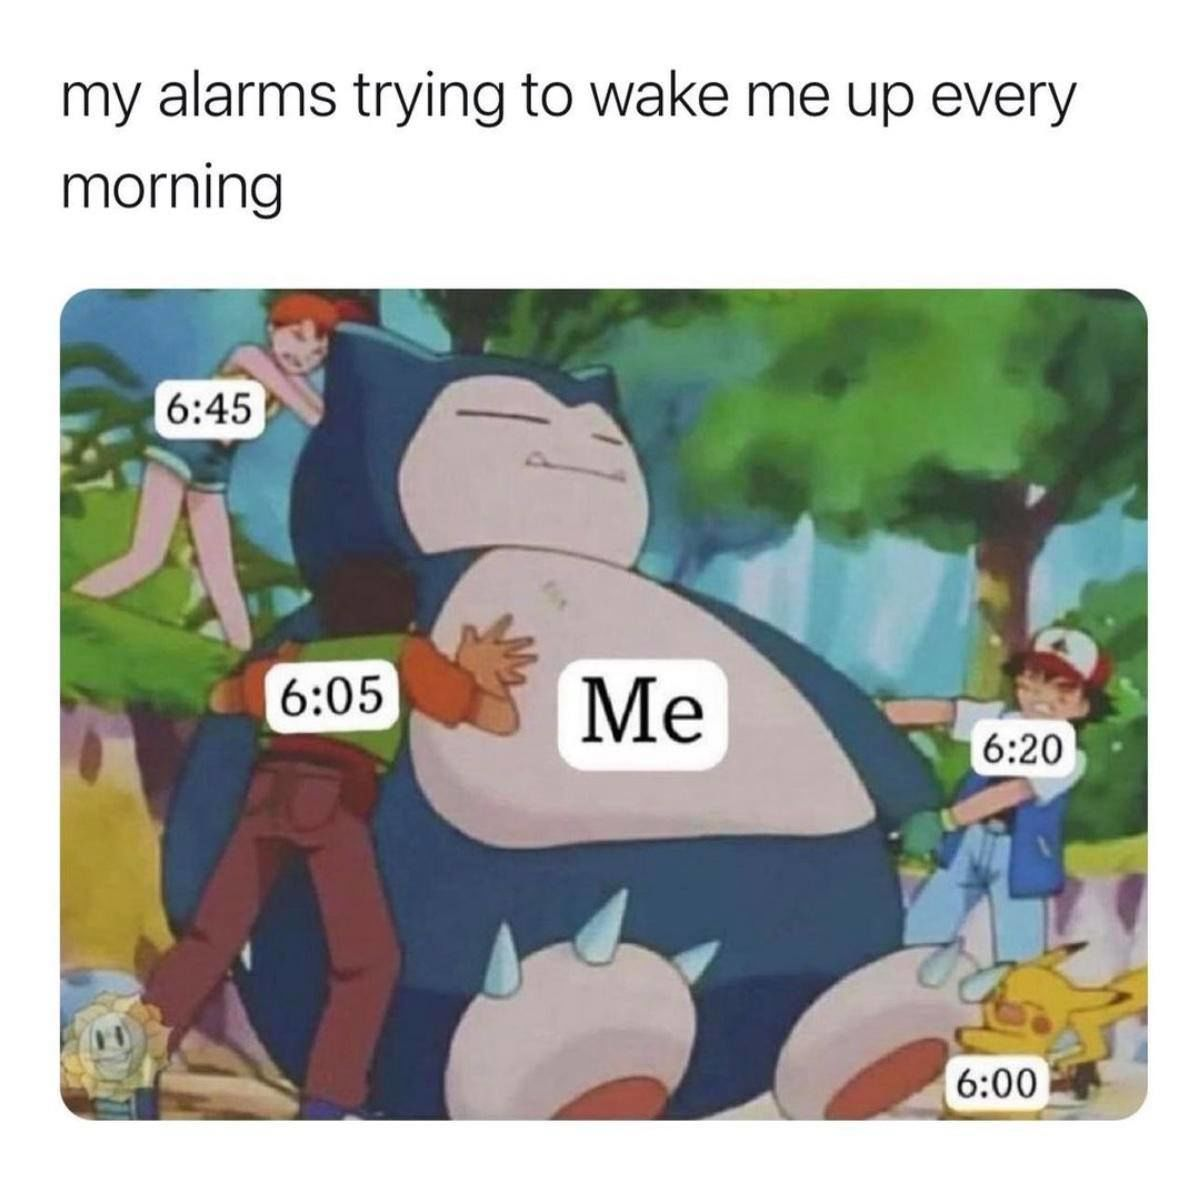 My alarms trying to wake me up every morning